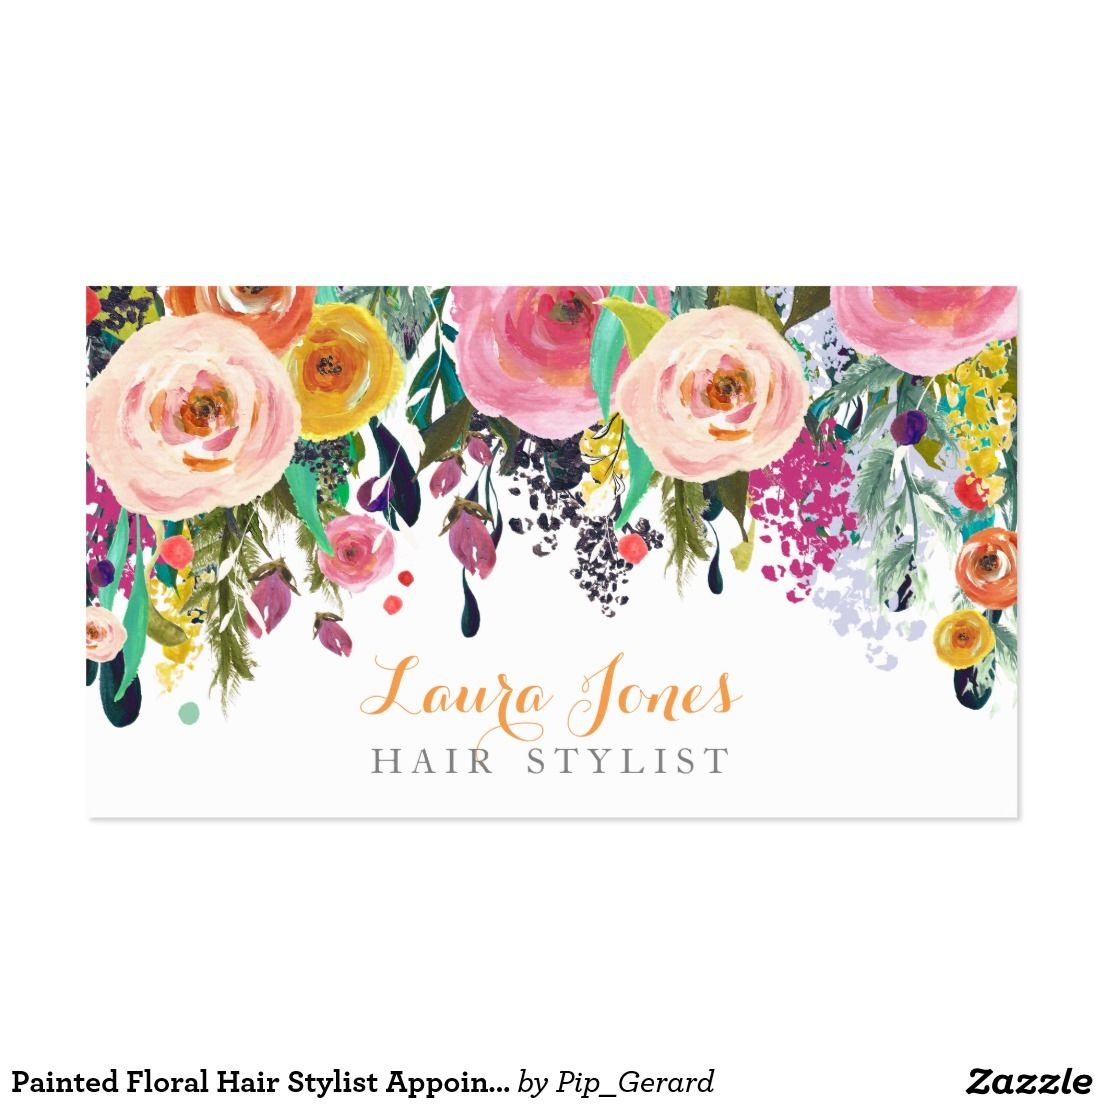 Painted Floral Hair Stylist Appointment Cards - Gorgeous bright ...